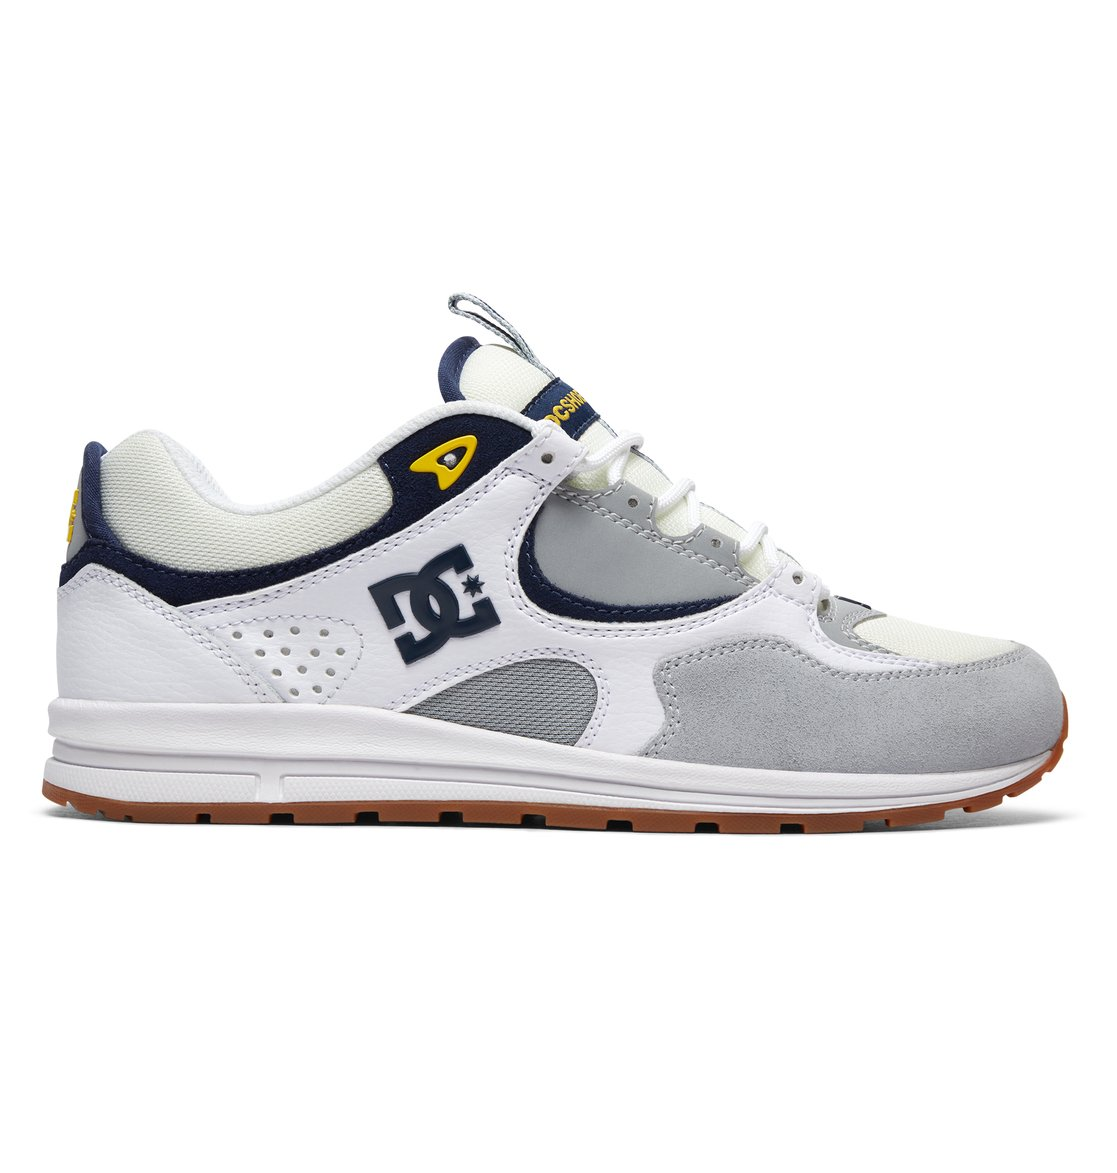 KALIS LITE - Skateschuh - white/grey/yellow h8mqkB